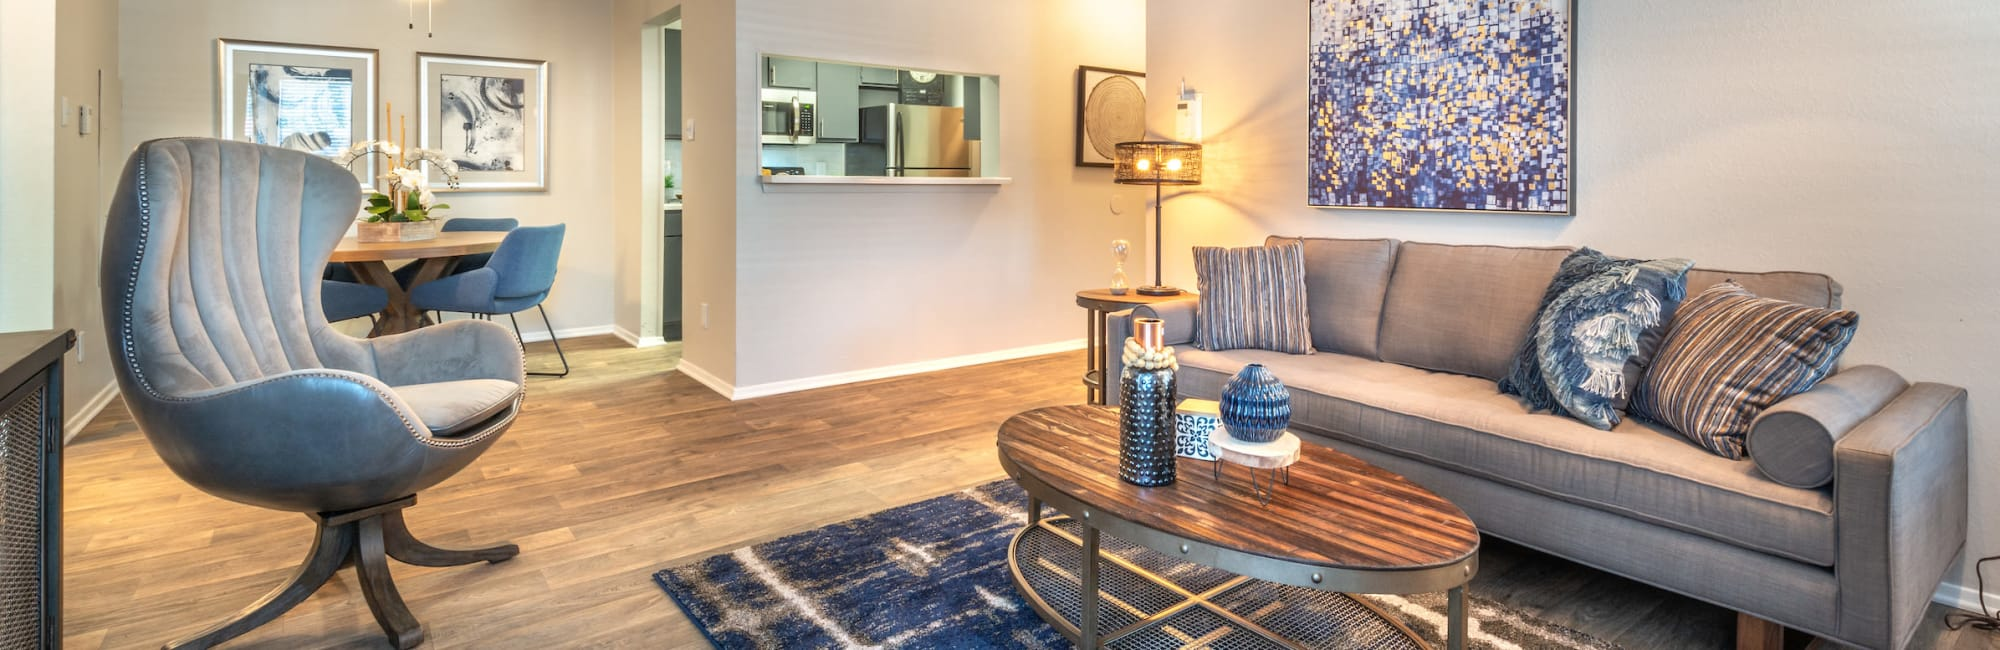 Apartments at Lane at Towne Crossing in Mesquite, Texas